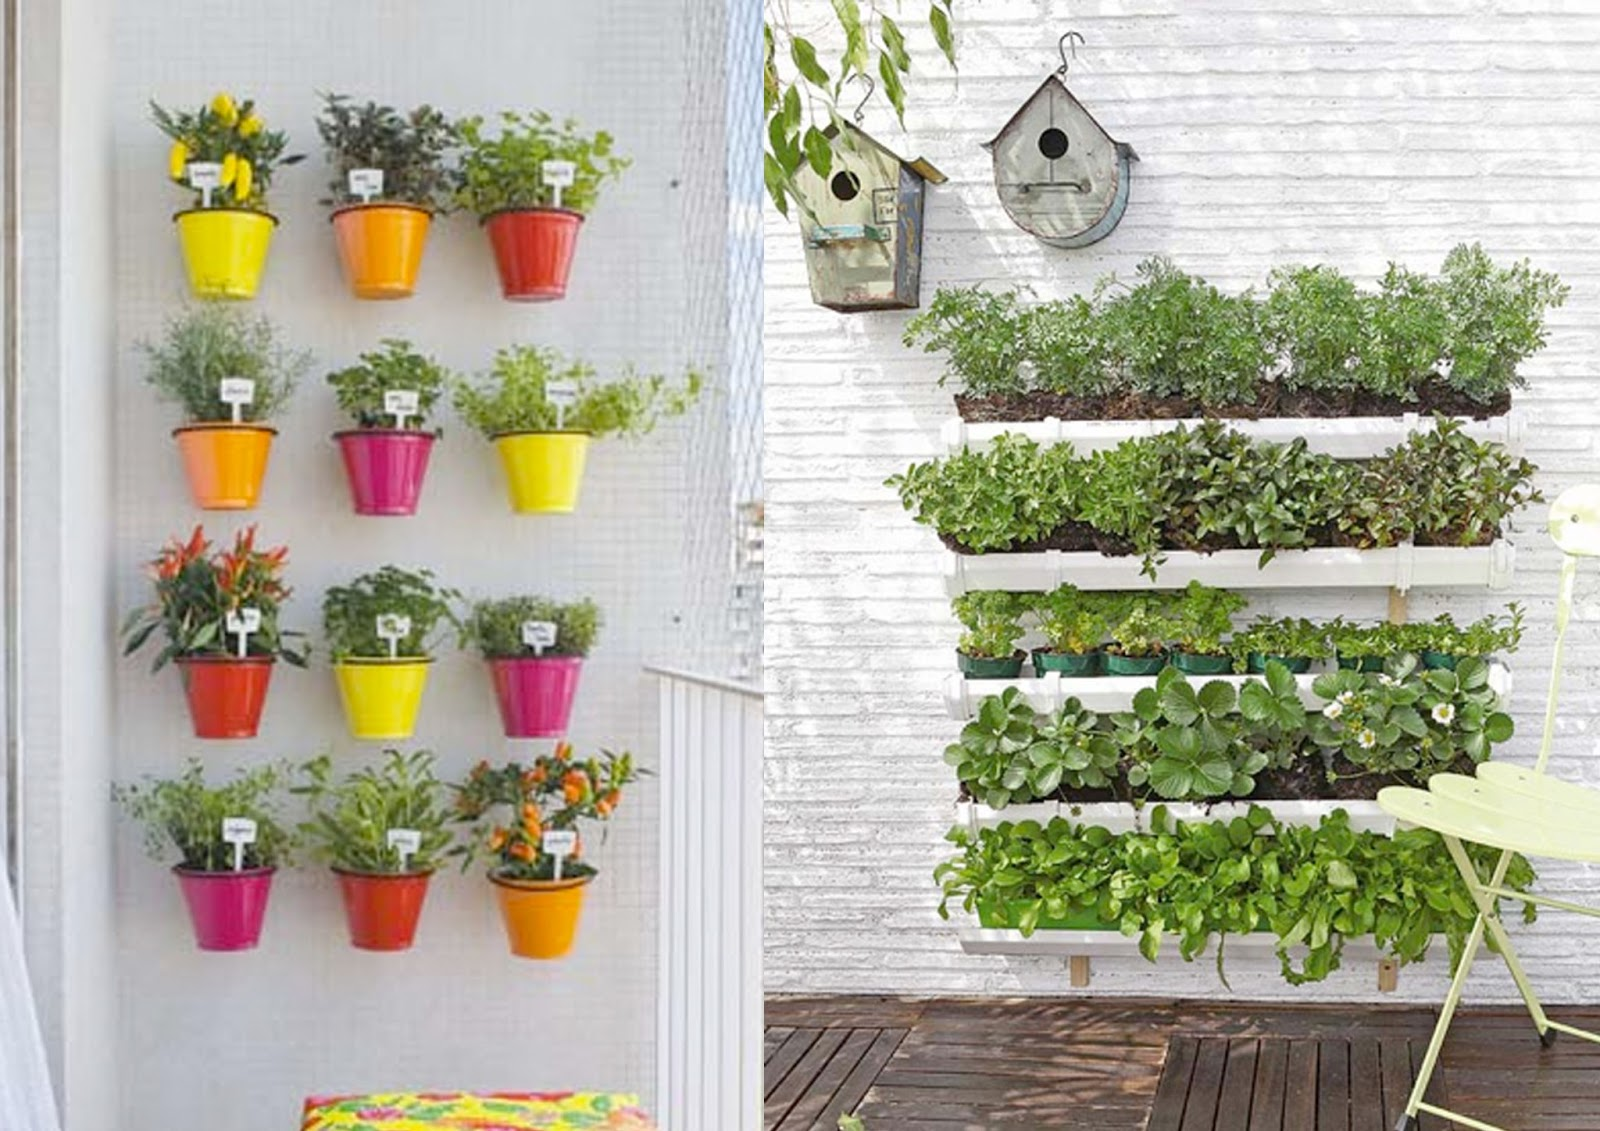 biggest-balcony-vertical-garden-ideas-in-best-ideas-for-your-home-with-balcony-vertical-garden-ideas-diy-home-decor-2016